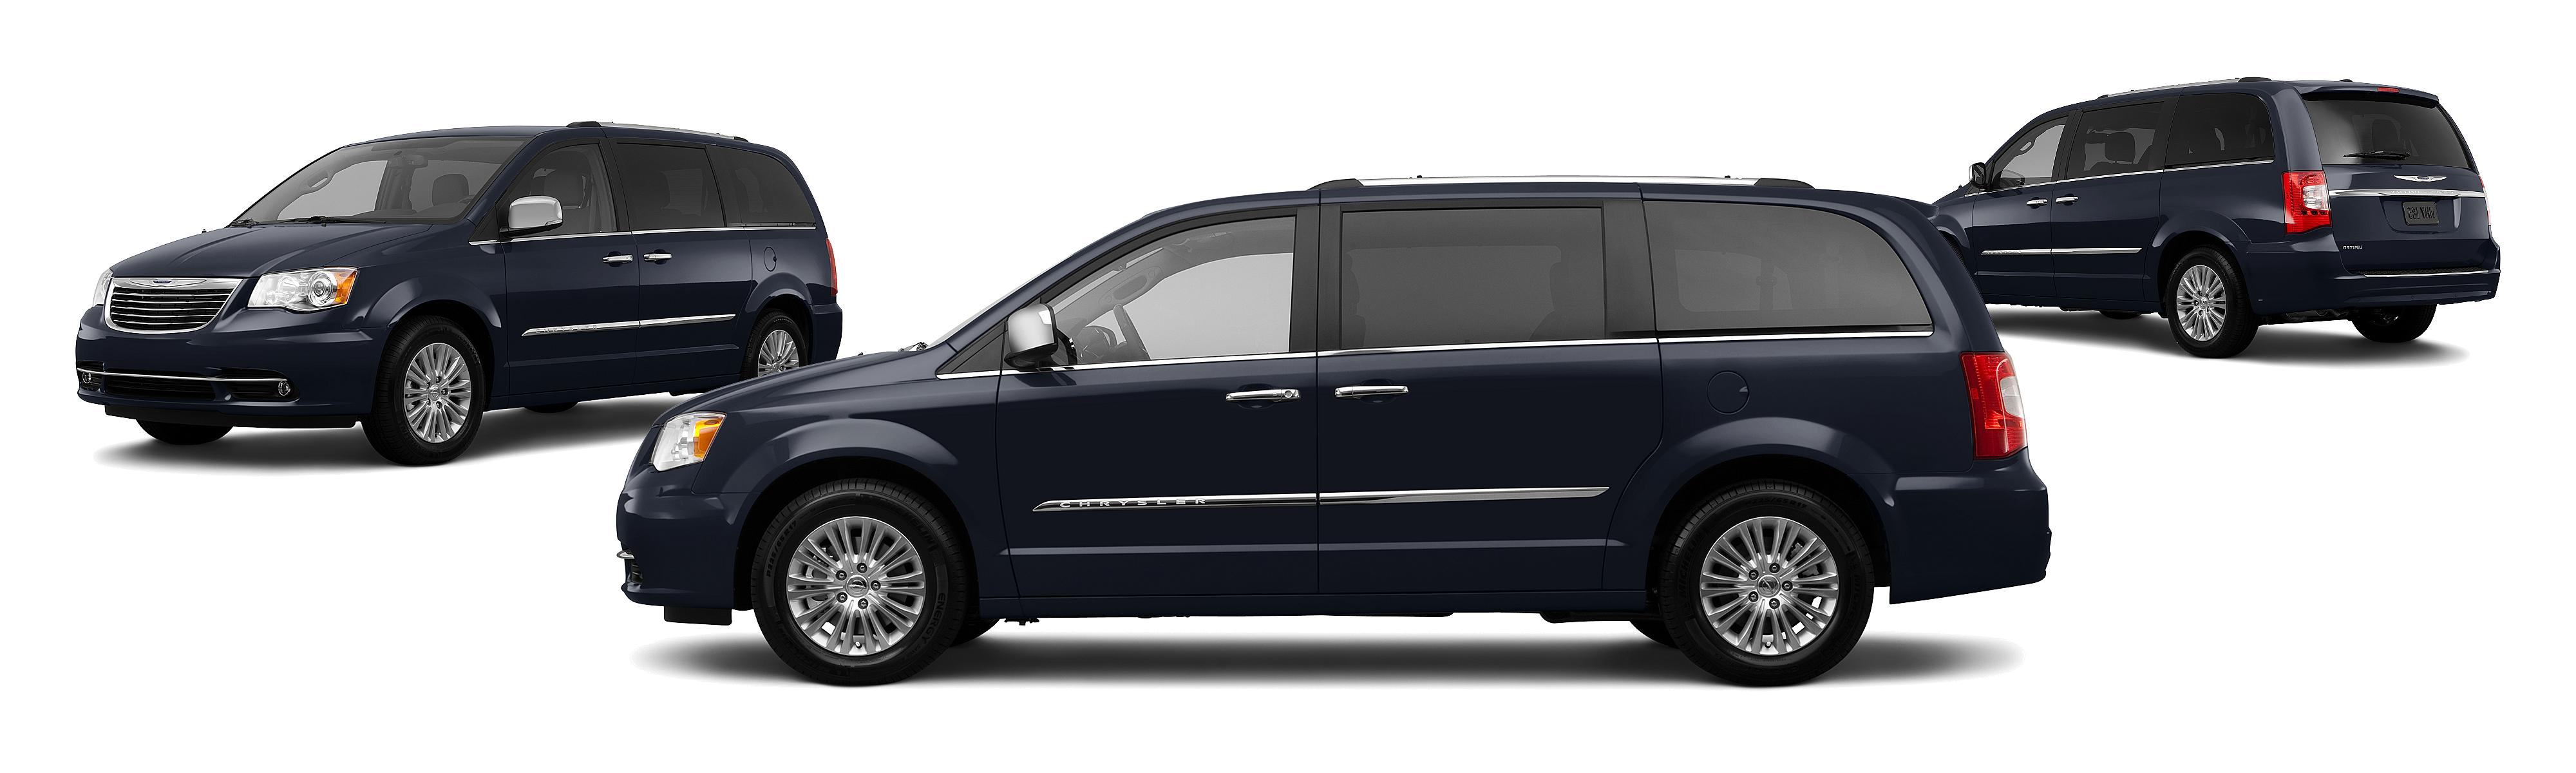 Great Description About 2012 Chrysler town and Country Recalls with Amazing Photos Cars Review